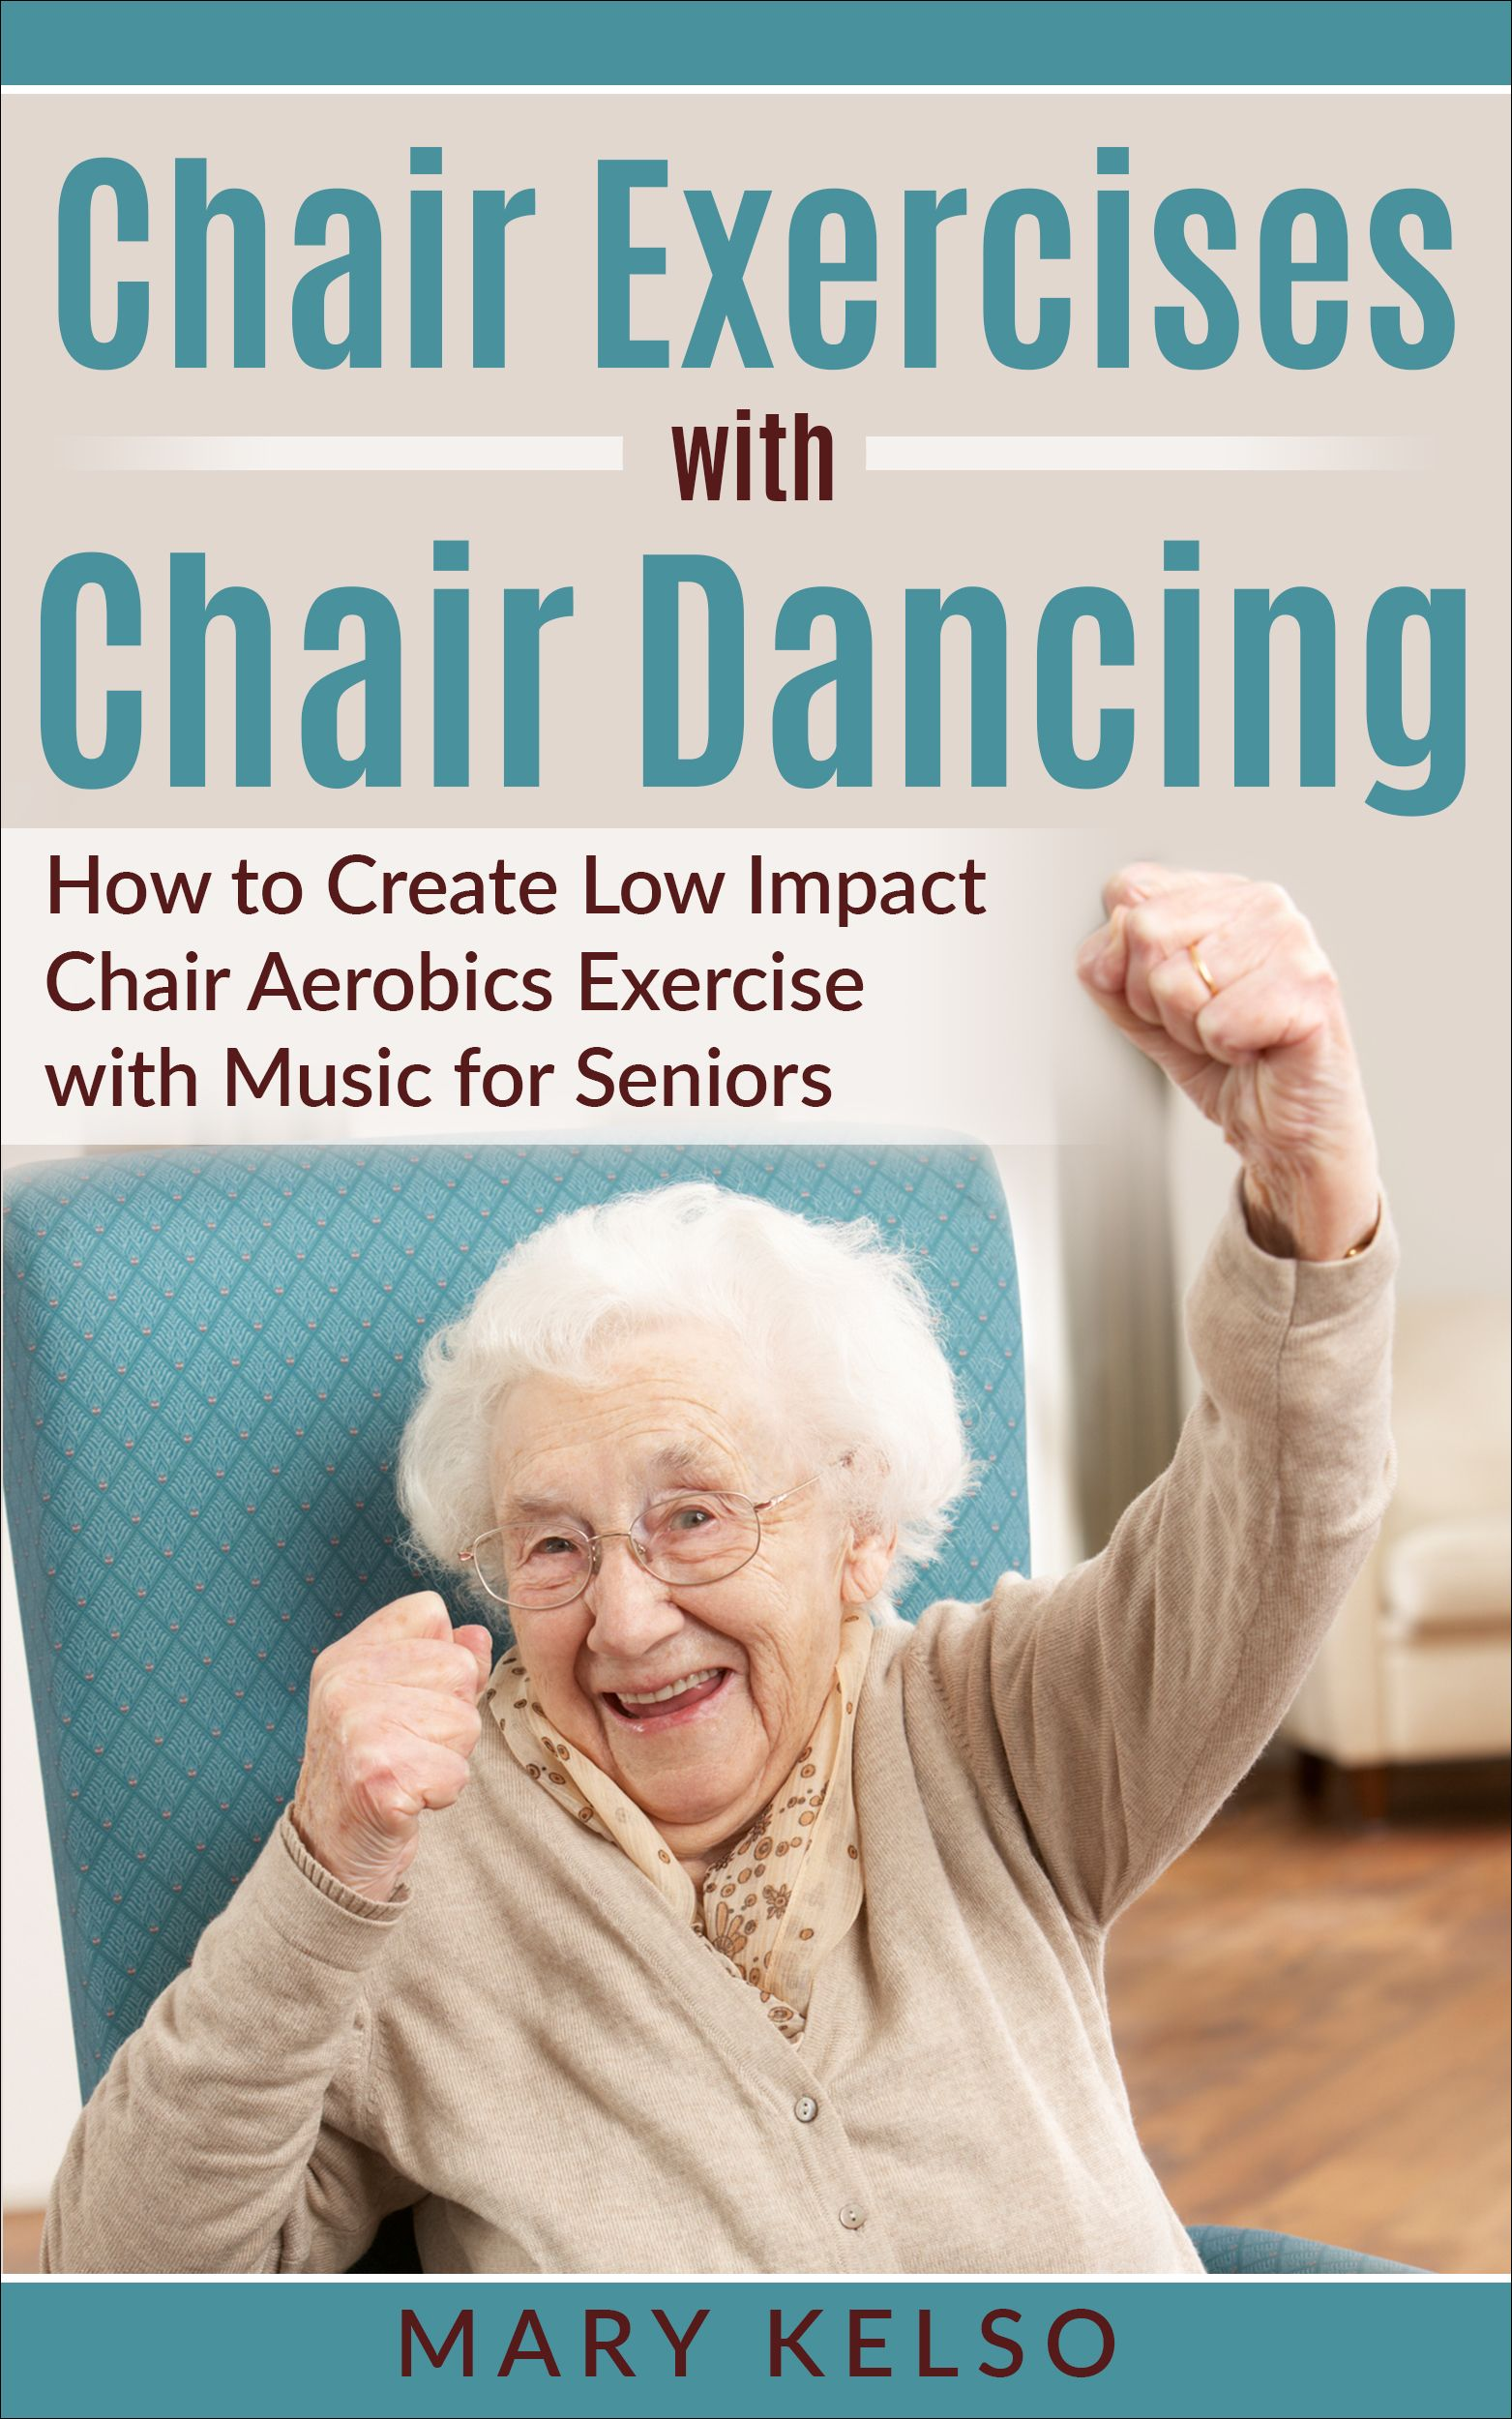 Chair Exercises With Chair Dancing